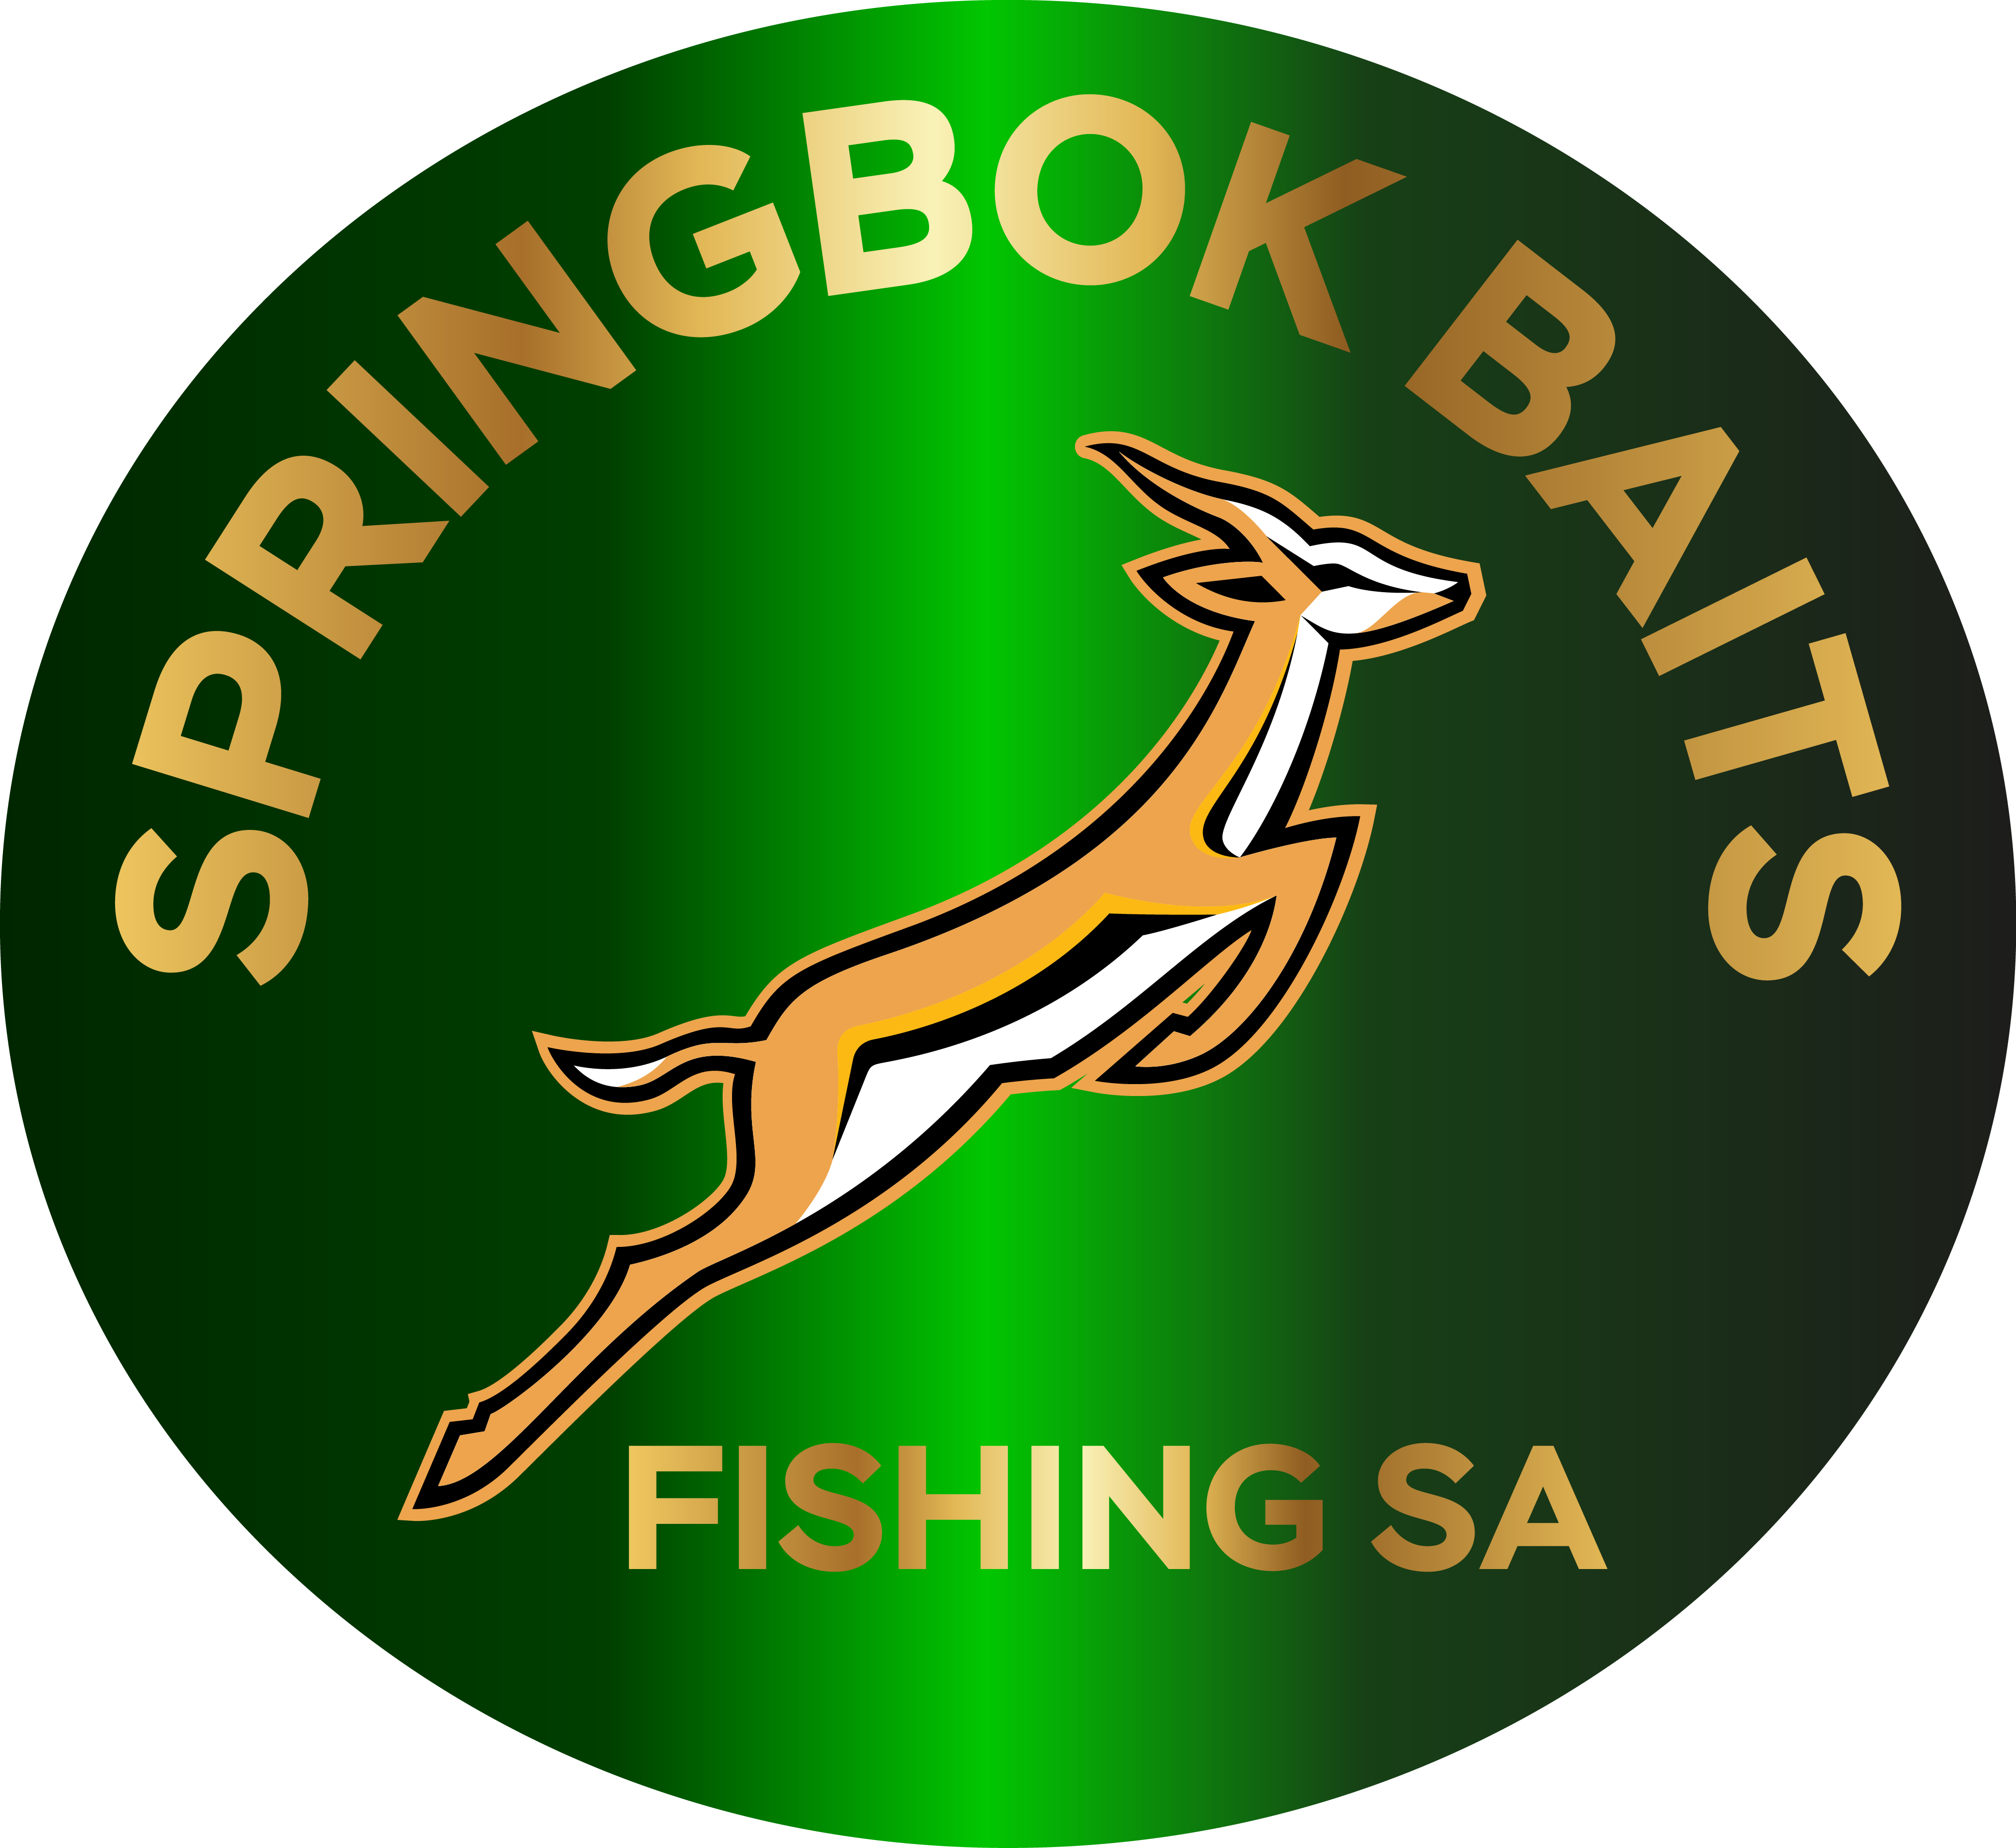 SPRINGBOK BAITS AND ANGLING SUPPLIES